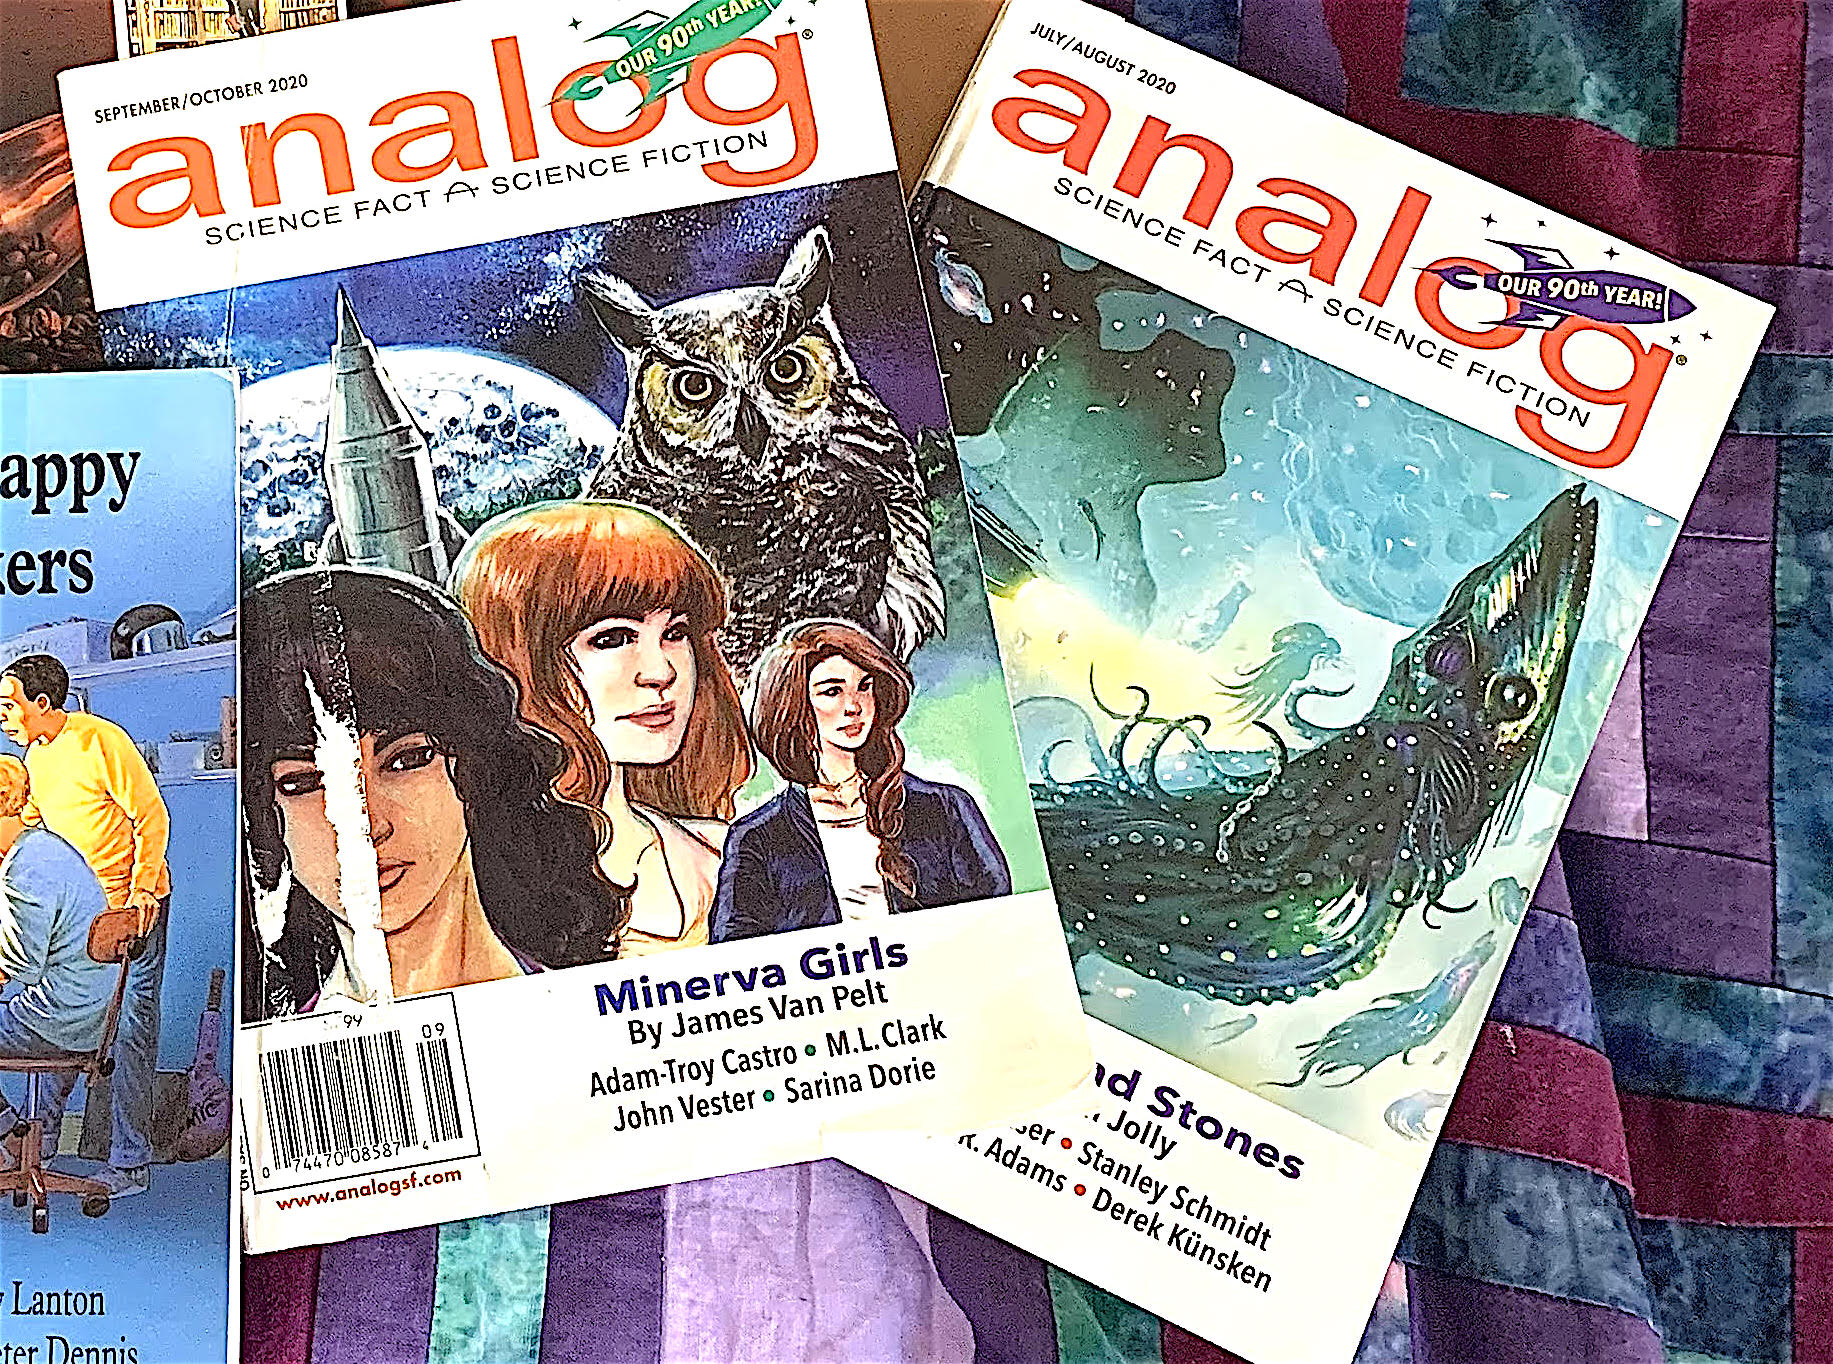 Close up of two issues of analog magazine. One cover shows three women and a large owl in the foreground.  Behind them is a pale moon or planet and a grey rocket pointing straight up.  The other cover shows a giant squid underwater, with the silhouettes of several smaller squid in the background.